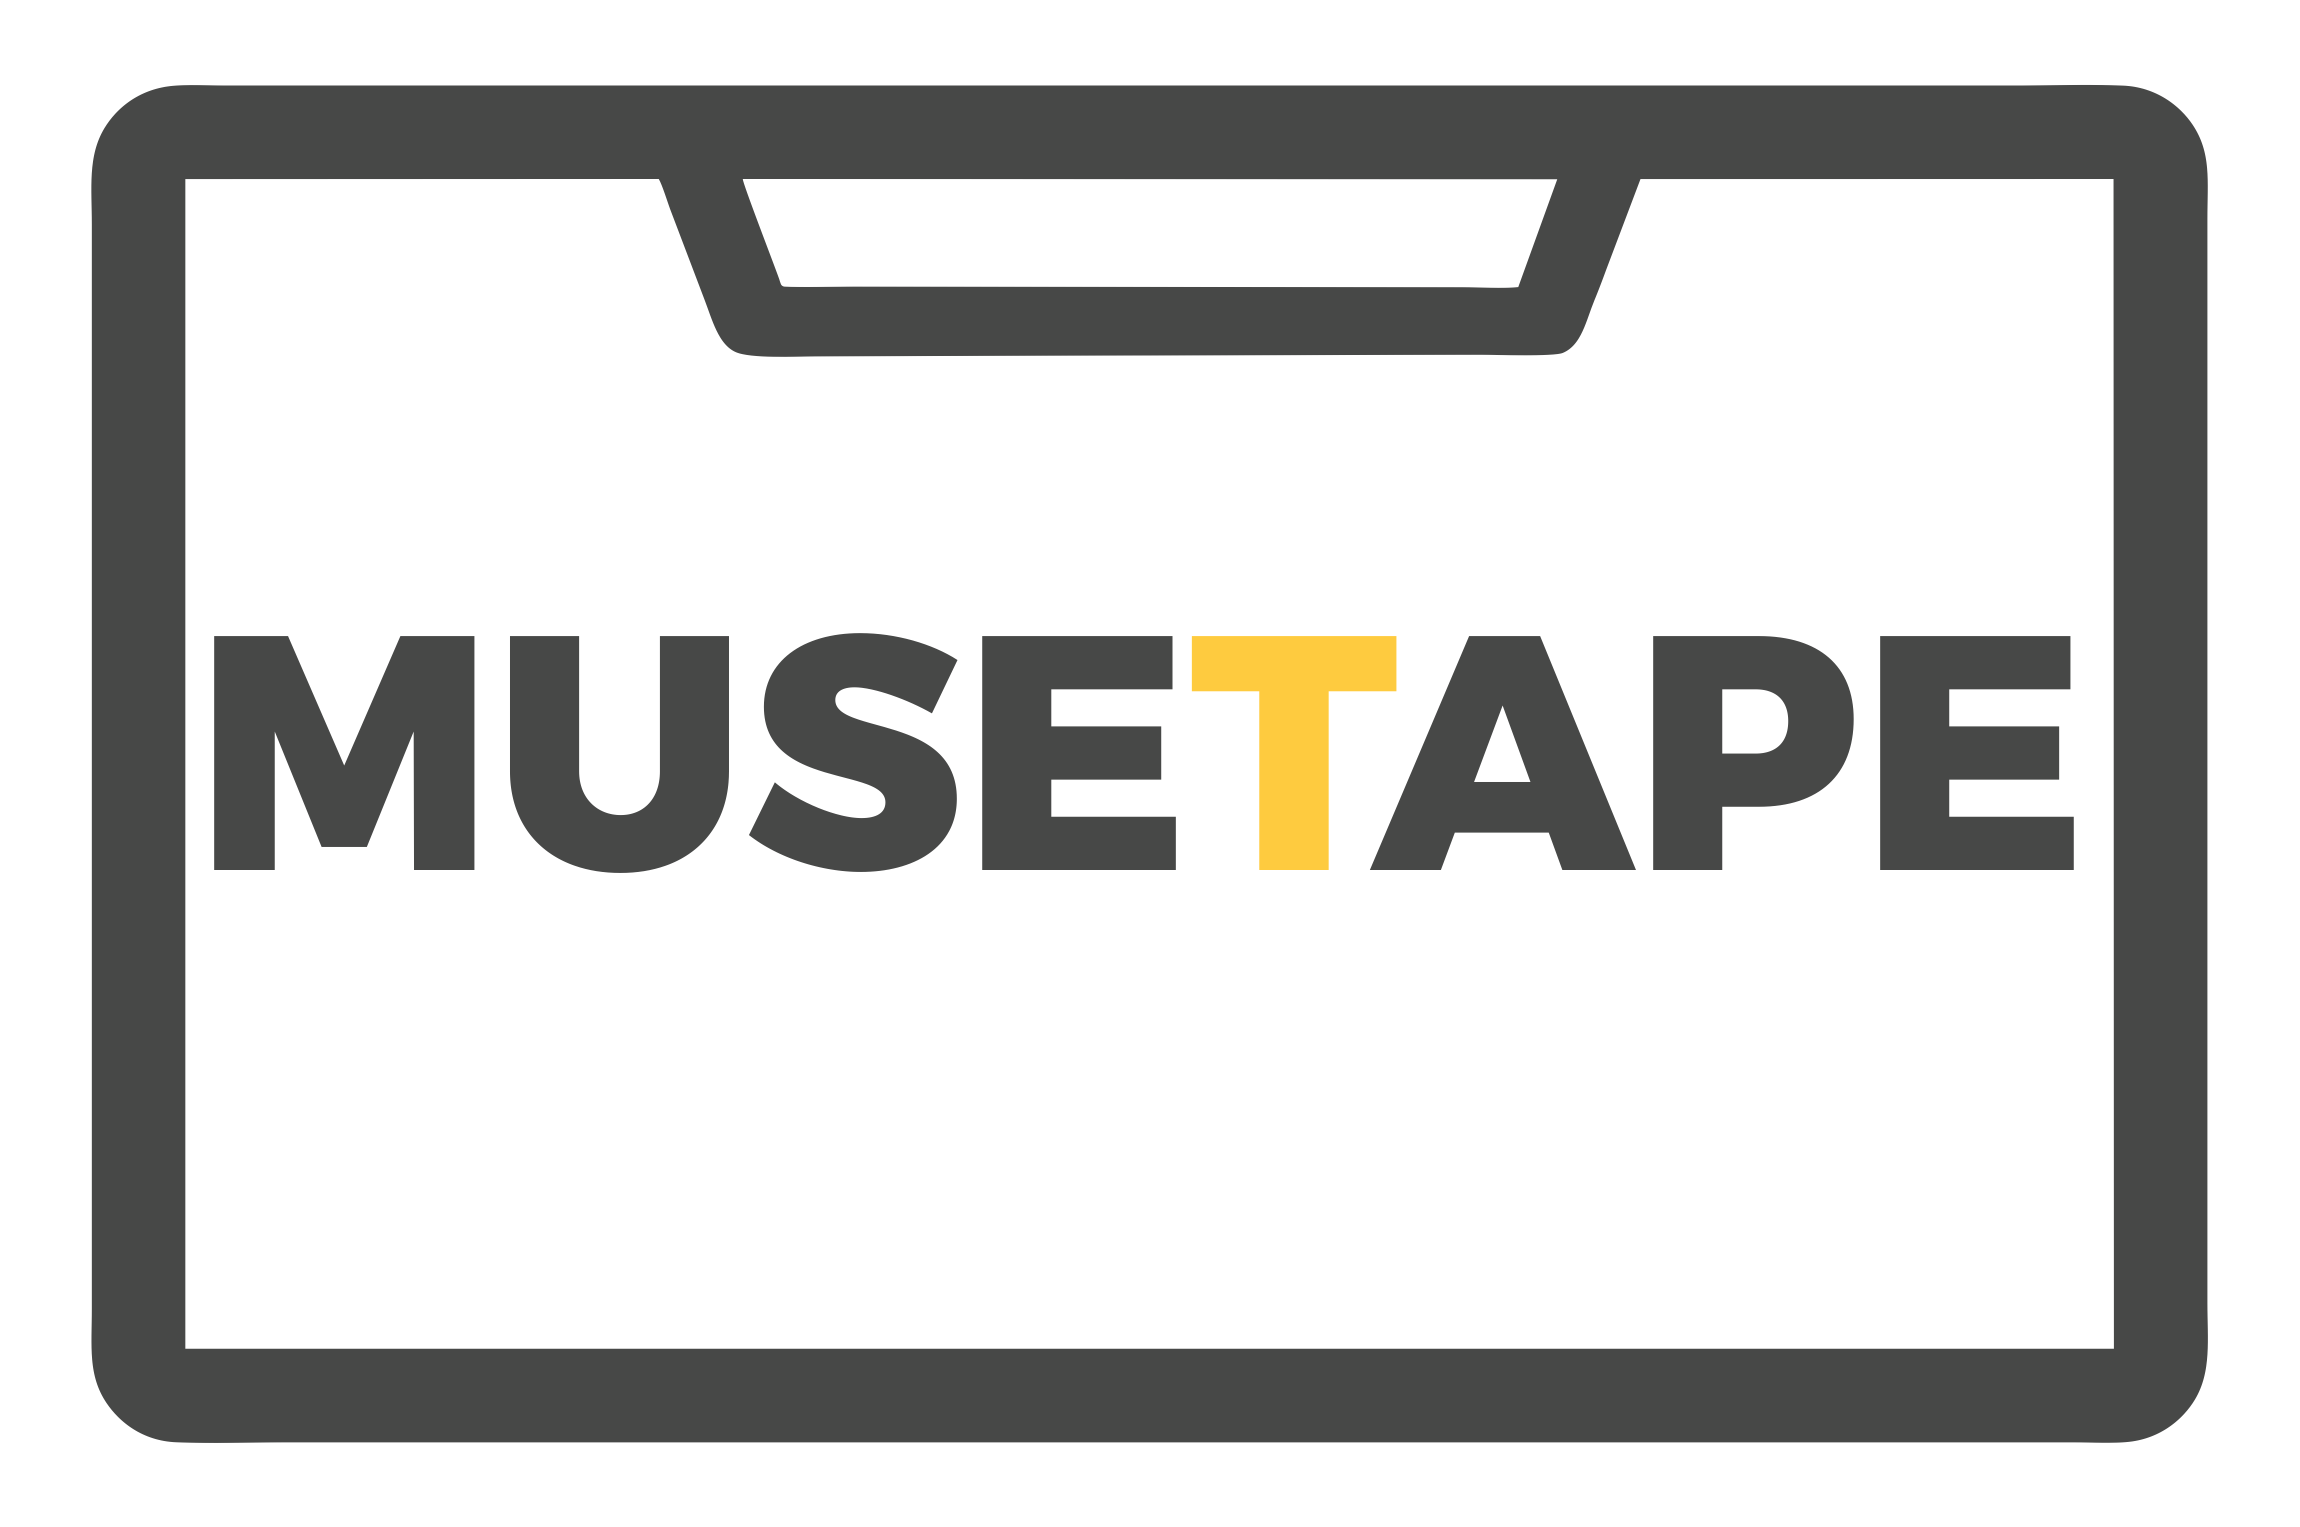 Musetape - Only epic playlists